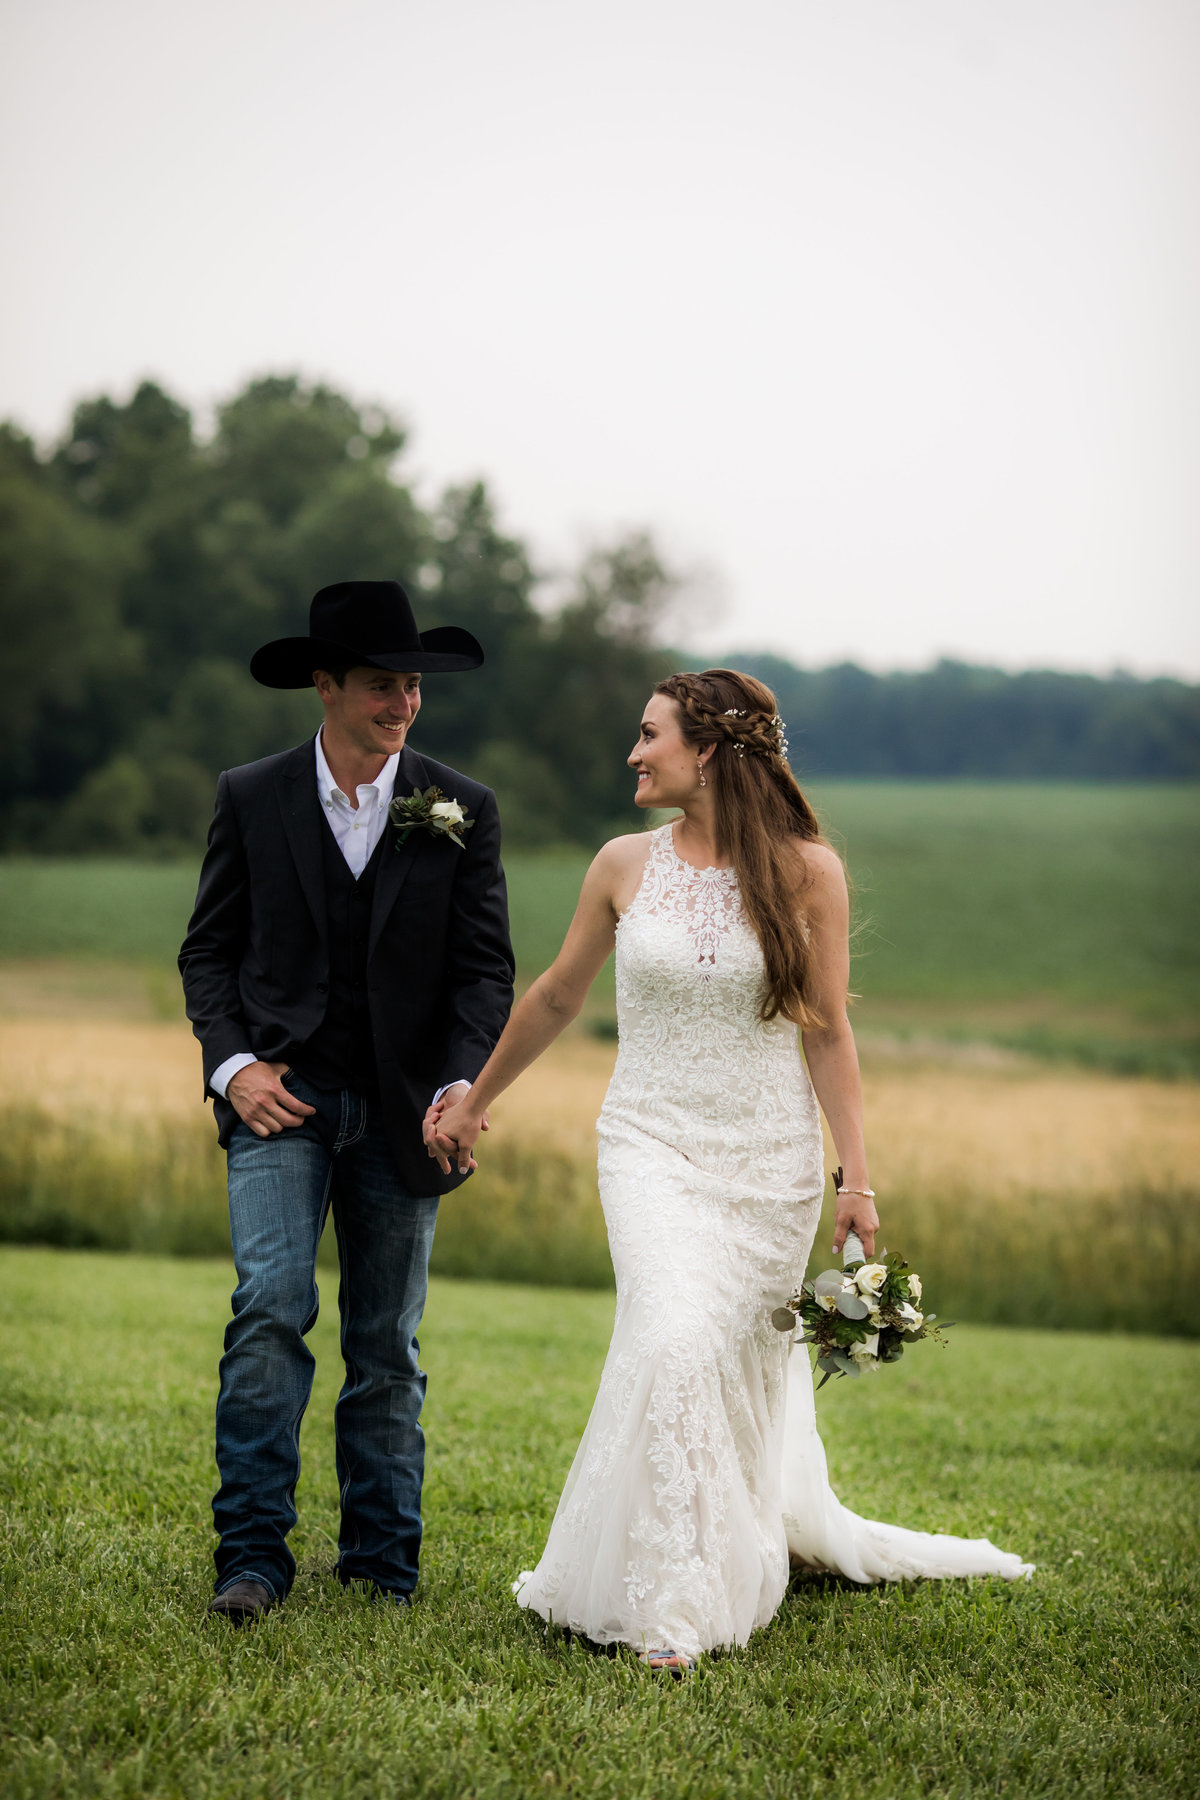 Nsshville Bride - Nashville Brides - The Hayloft Weddings - Tennessee Brides - Kentucky Brides - Southern Brides - Cowboys Wife - Cowboys Bride - Ranch Weddings - Cowboys and Belles069